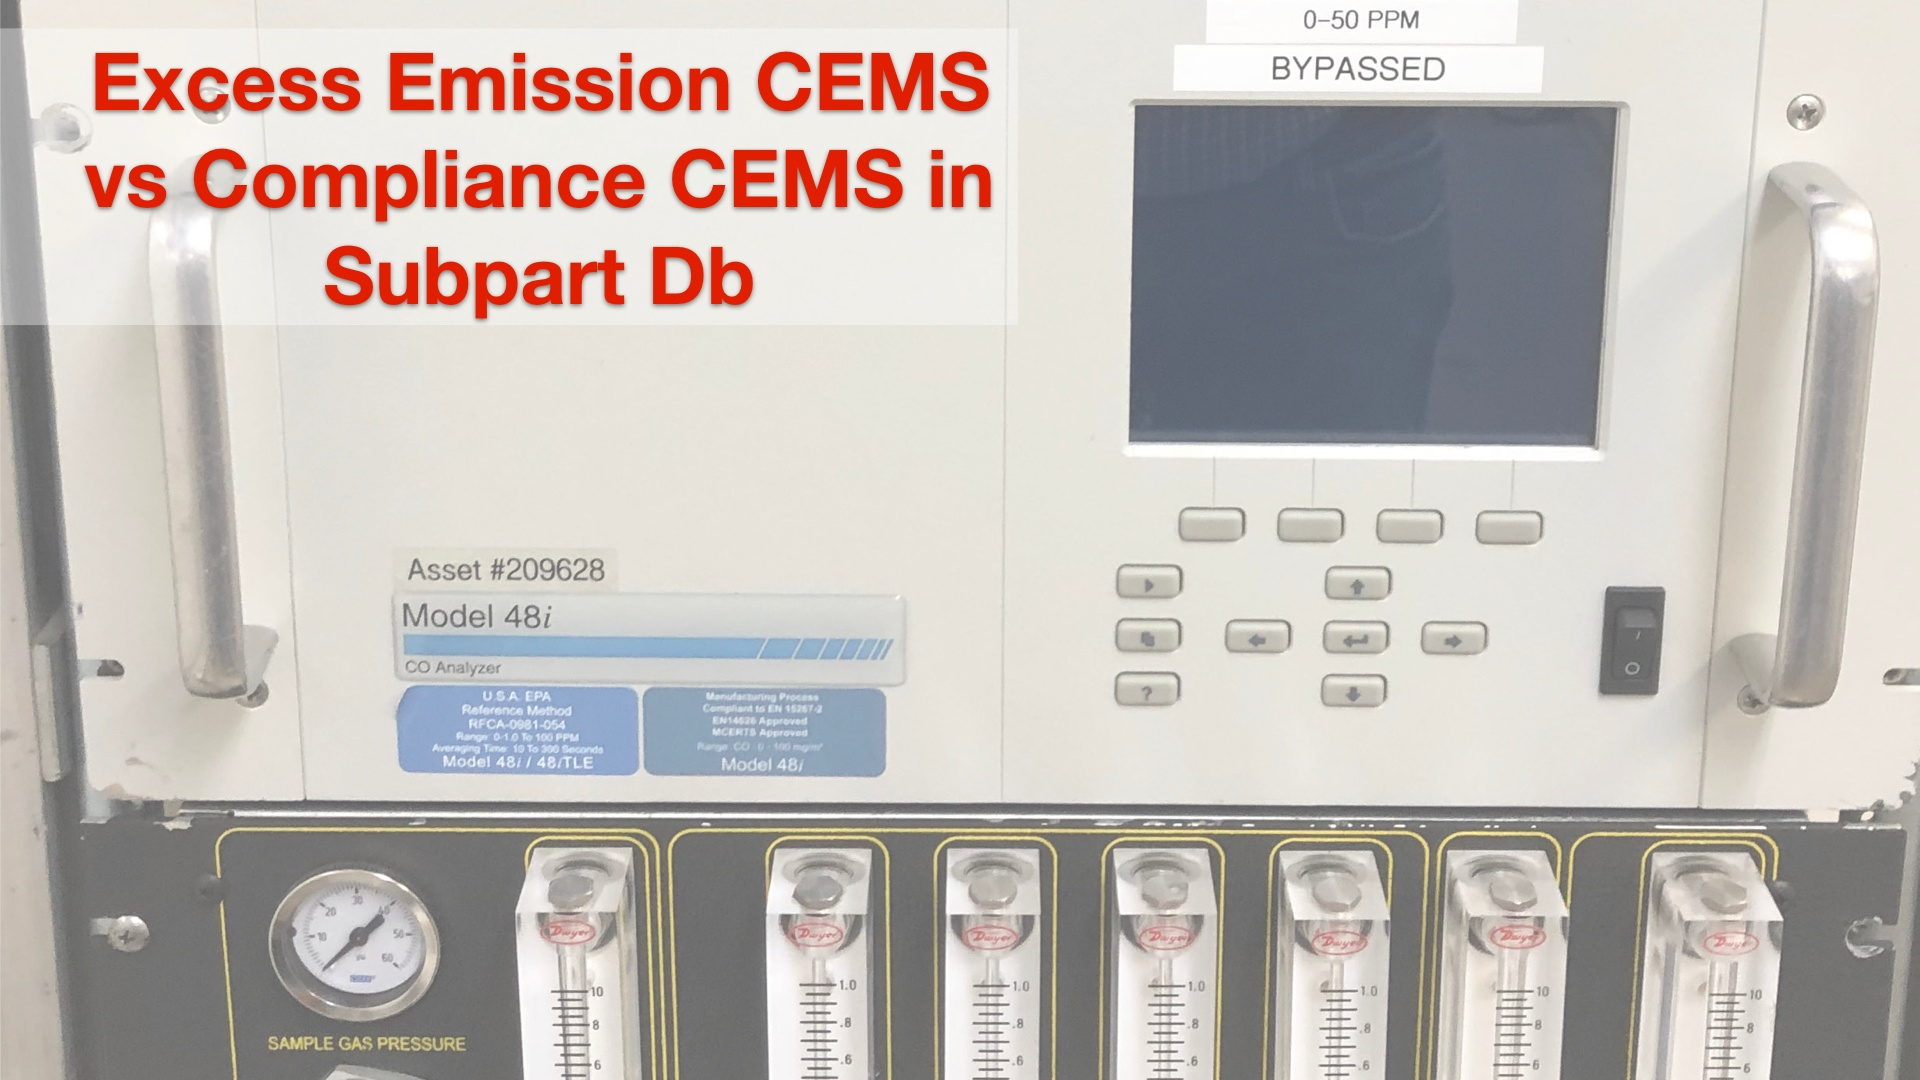 Excess Emission CEMS vs Compliance CEMS in Subpart Db